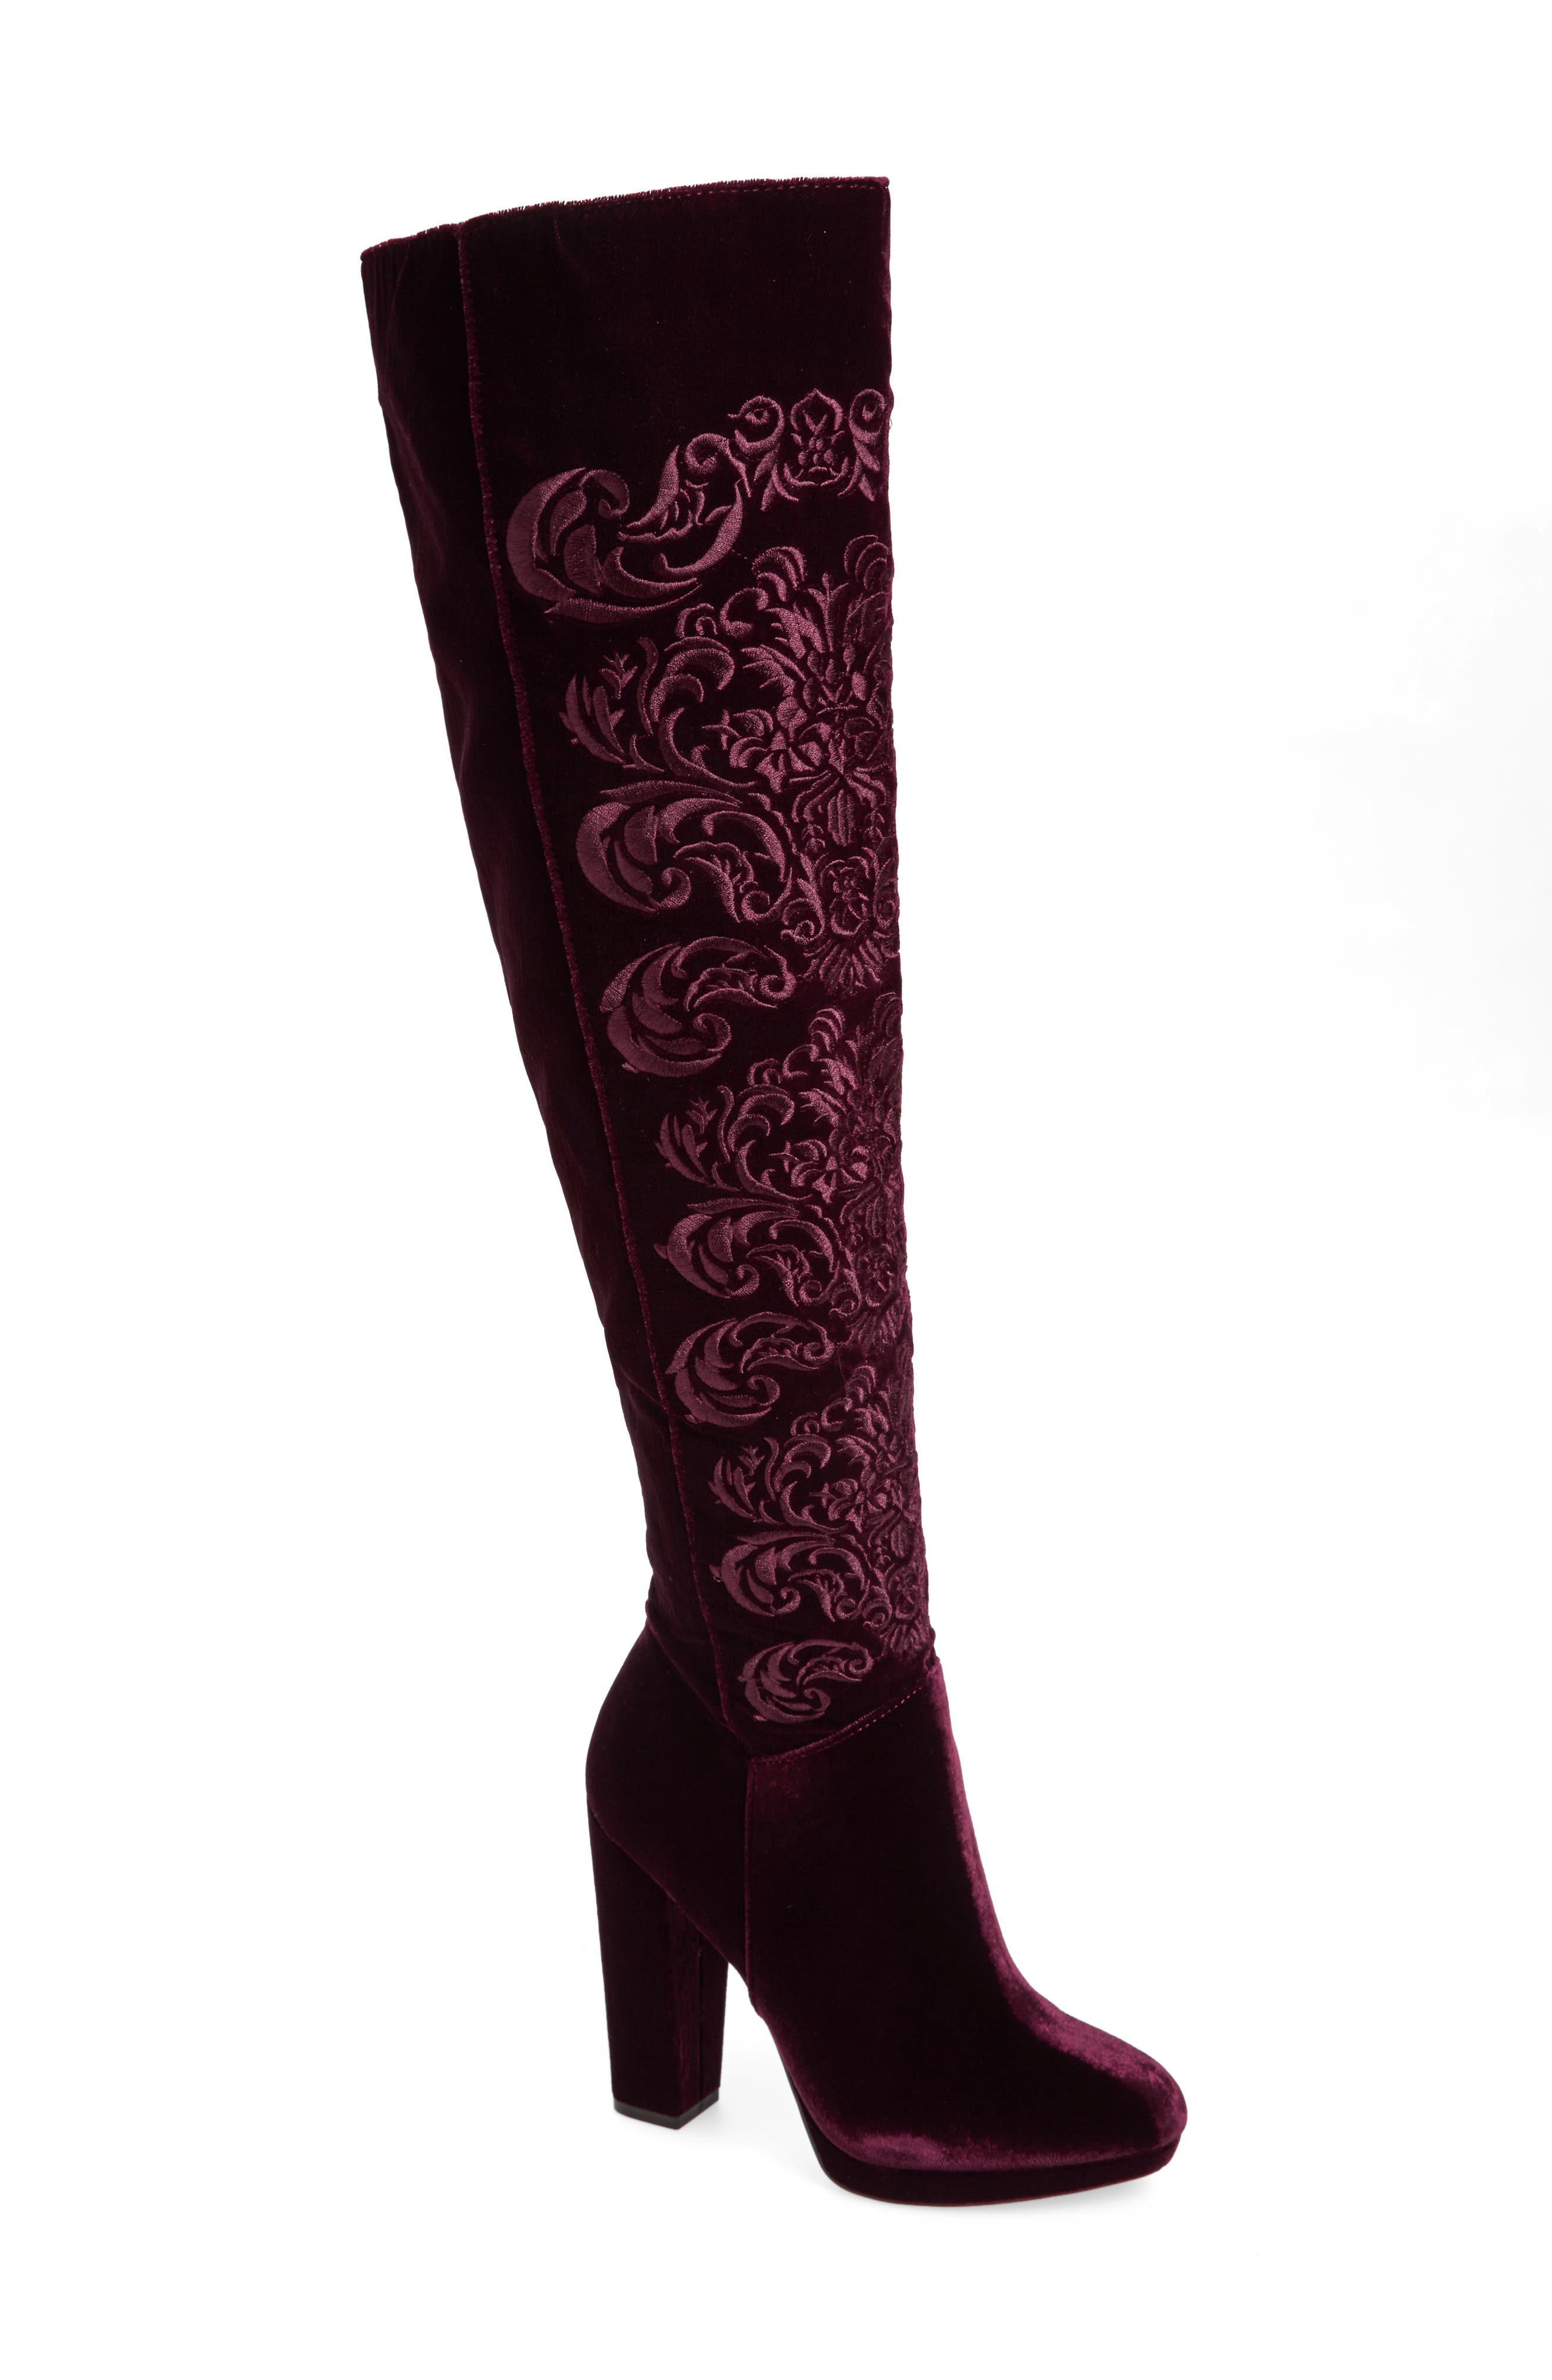 Alternate Image 1 Selected - Jessica Simpson Grizella Embroidered Over the Knee Boot (Women)